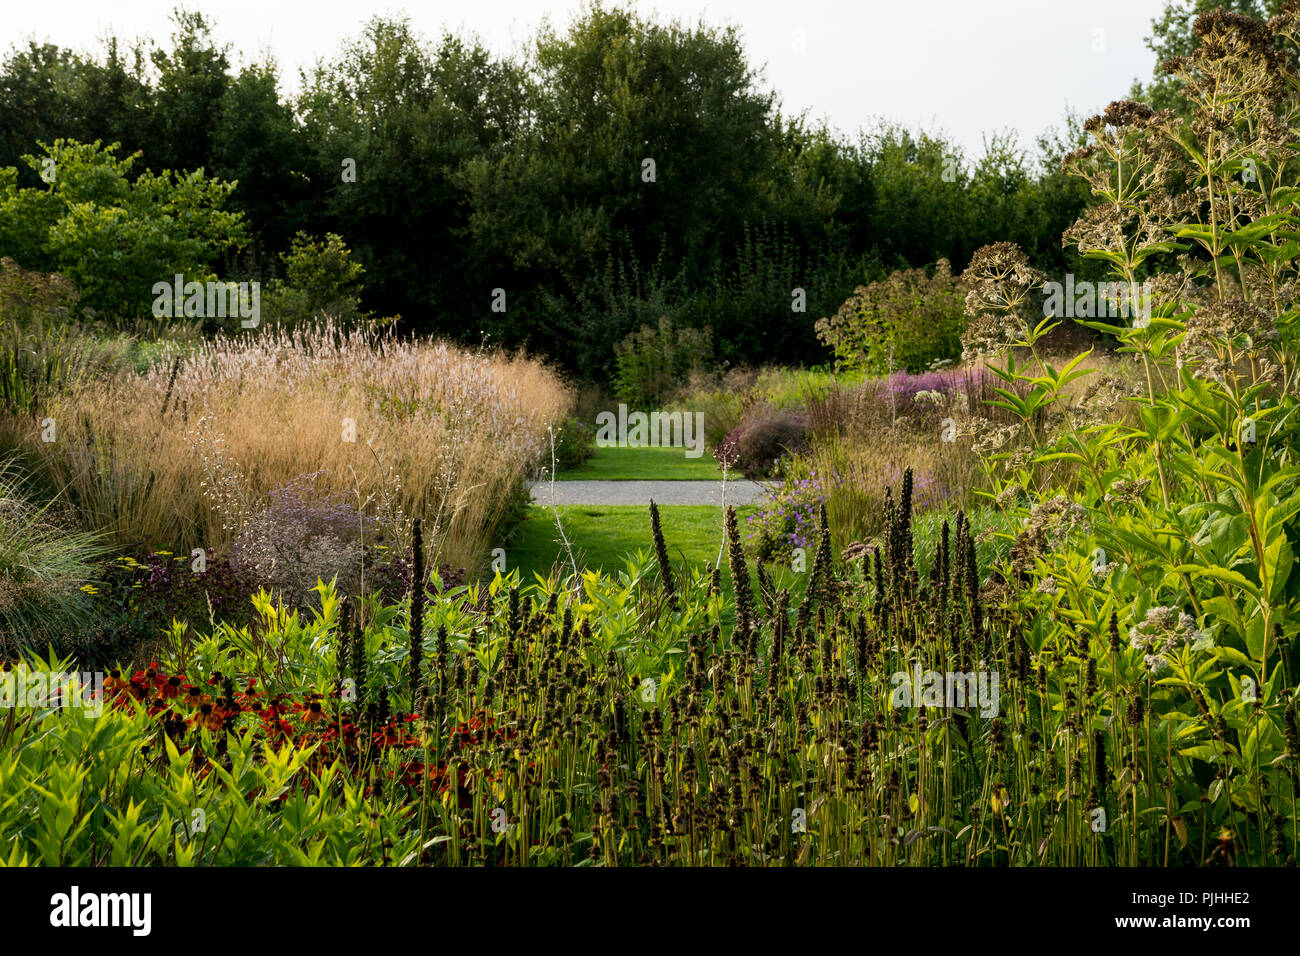 Herbaceous borders with ornamental grasses and perennials - Stock Image